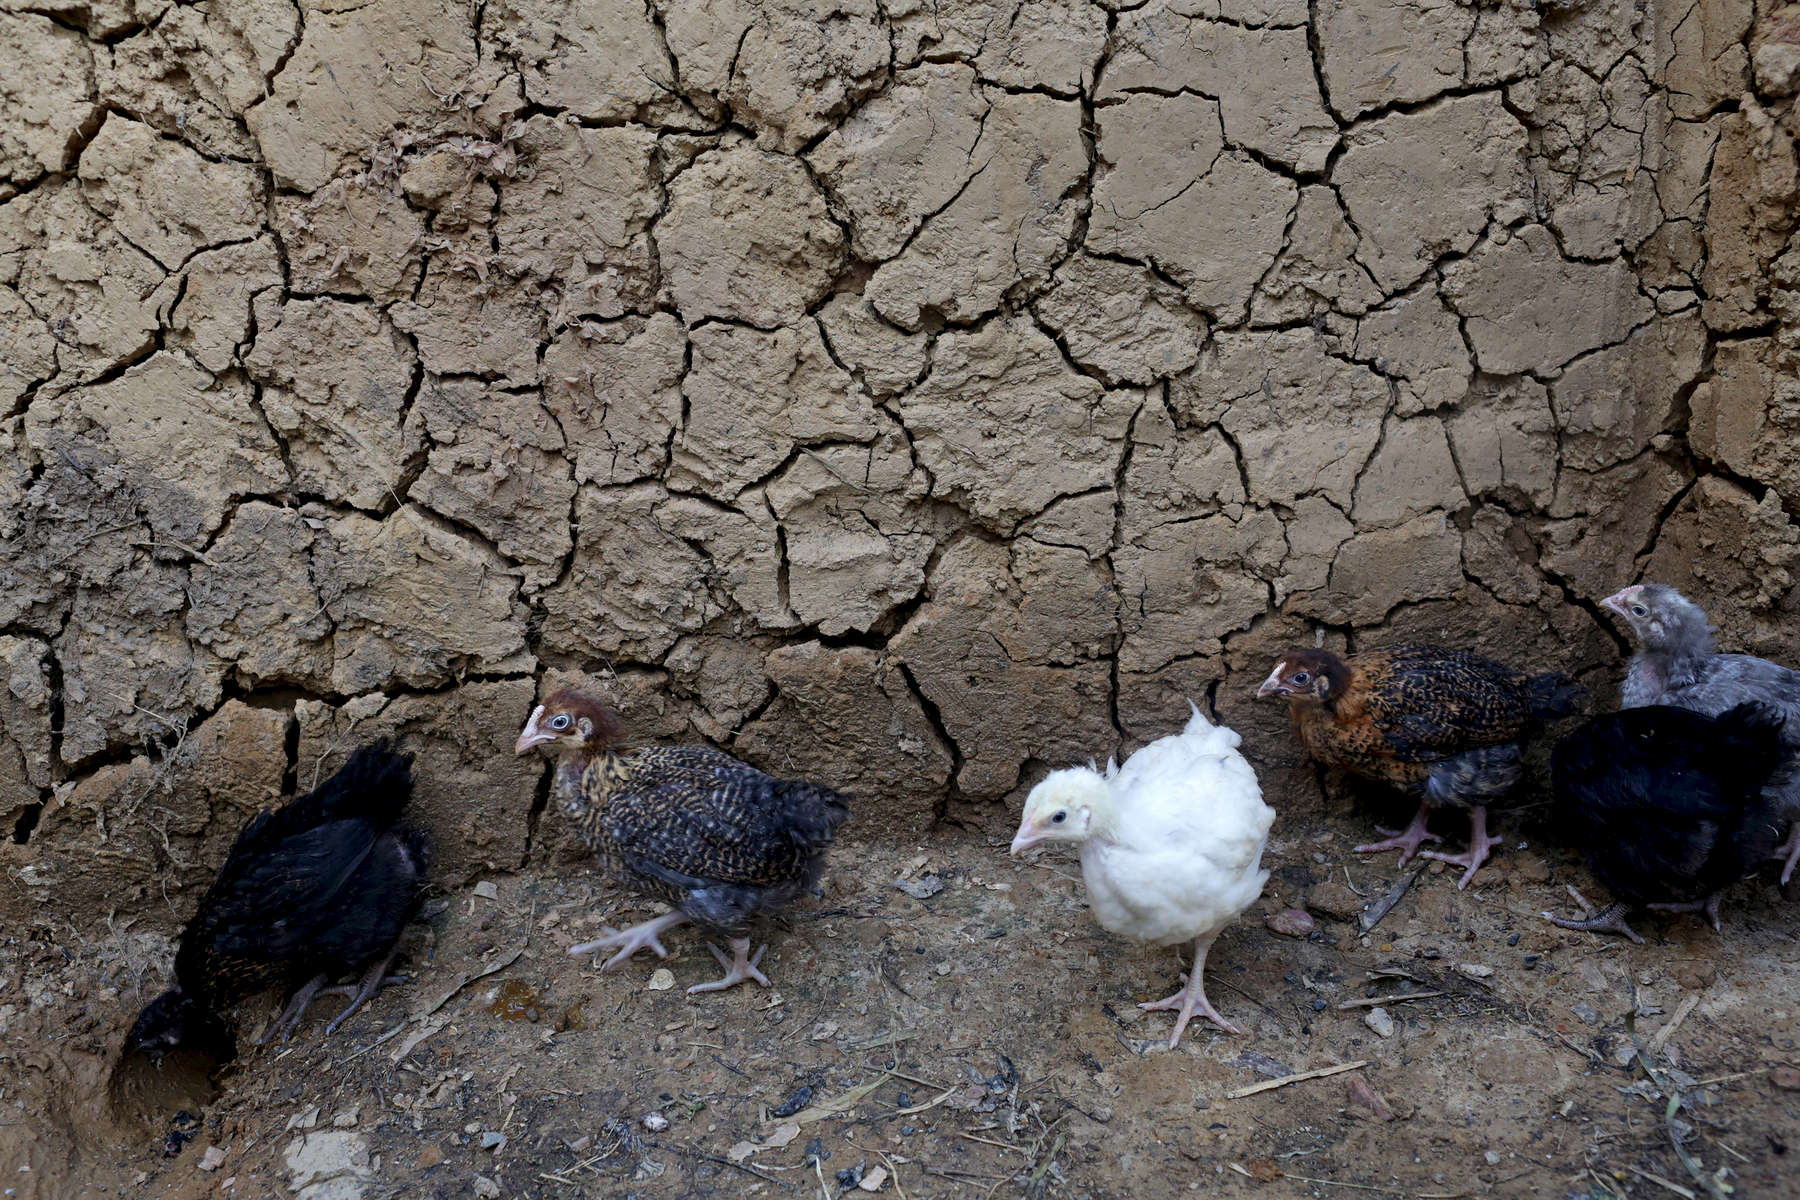 The chicken farm Etiene Twagirayezu, 60, was able to create as a result of saving time via cooking with a biogas digester at his home in Rutabo, Rwanda on November 18, 2017. Twagirayezu says that before his digester, he'd spend up to 3 hours a day gathering 10 kilograms of wood, and saw kids get injured climbing trees and be late to school doing the same. He added he was happy his workload at home was reduced due to being able to use his cow's and pig's poo instead of wood as fuel, as well as about the resulting lessening of deforestation. Nearly half of all Rwandans live in poverty, relying on small-scale farming for survival without gas or electricity. With so many women and children spending hours of the day foraging for wood used for cooking and light, often damaging their eyes, lungs, the forests and atmosphere, a little inventiveness helps. Enter cow and enter pig -- not just as a source of food, but also the heat needed to cook it. Or more specifically, their poo -- the fuel fed to a biogas digester, a tank that converts organic waste into methane.